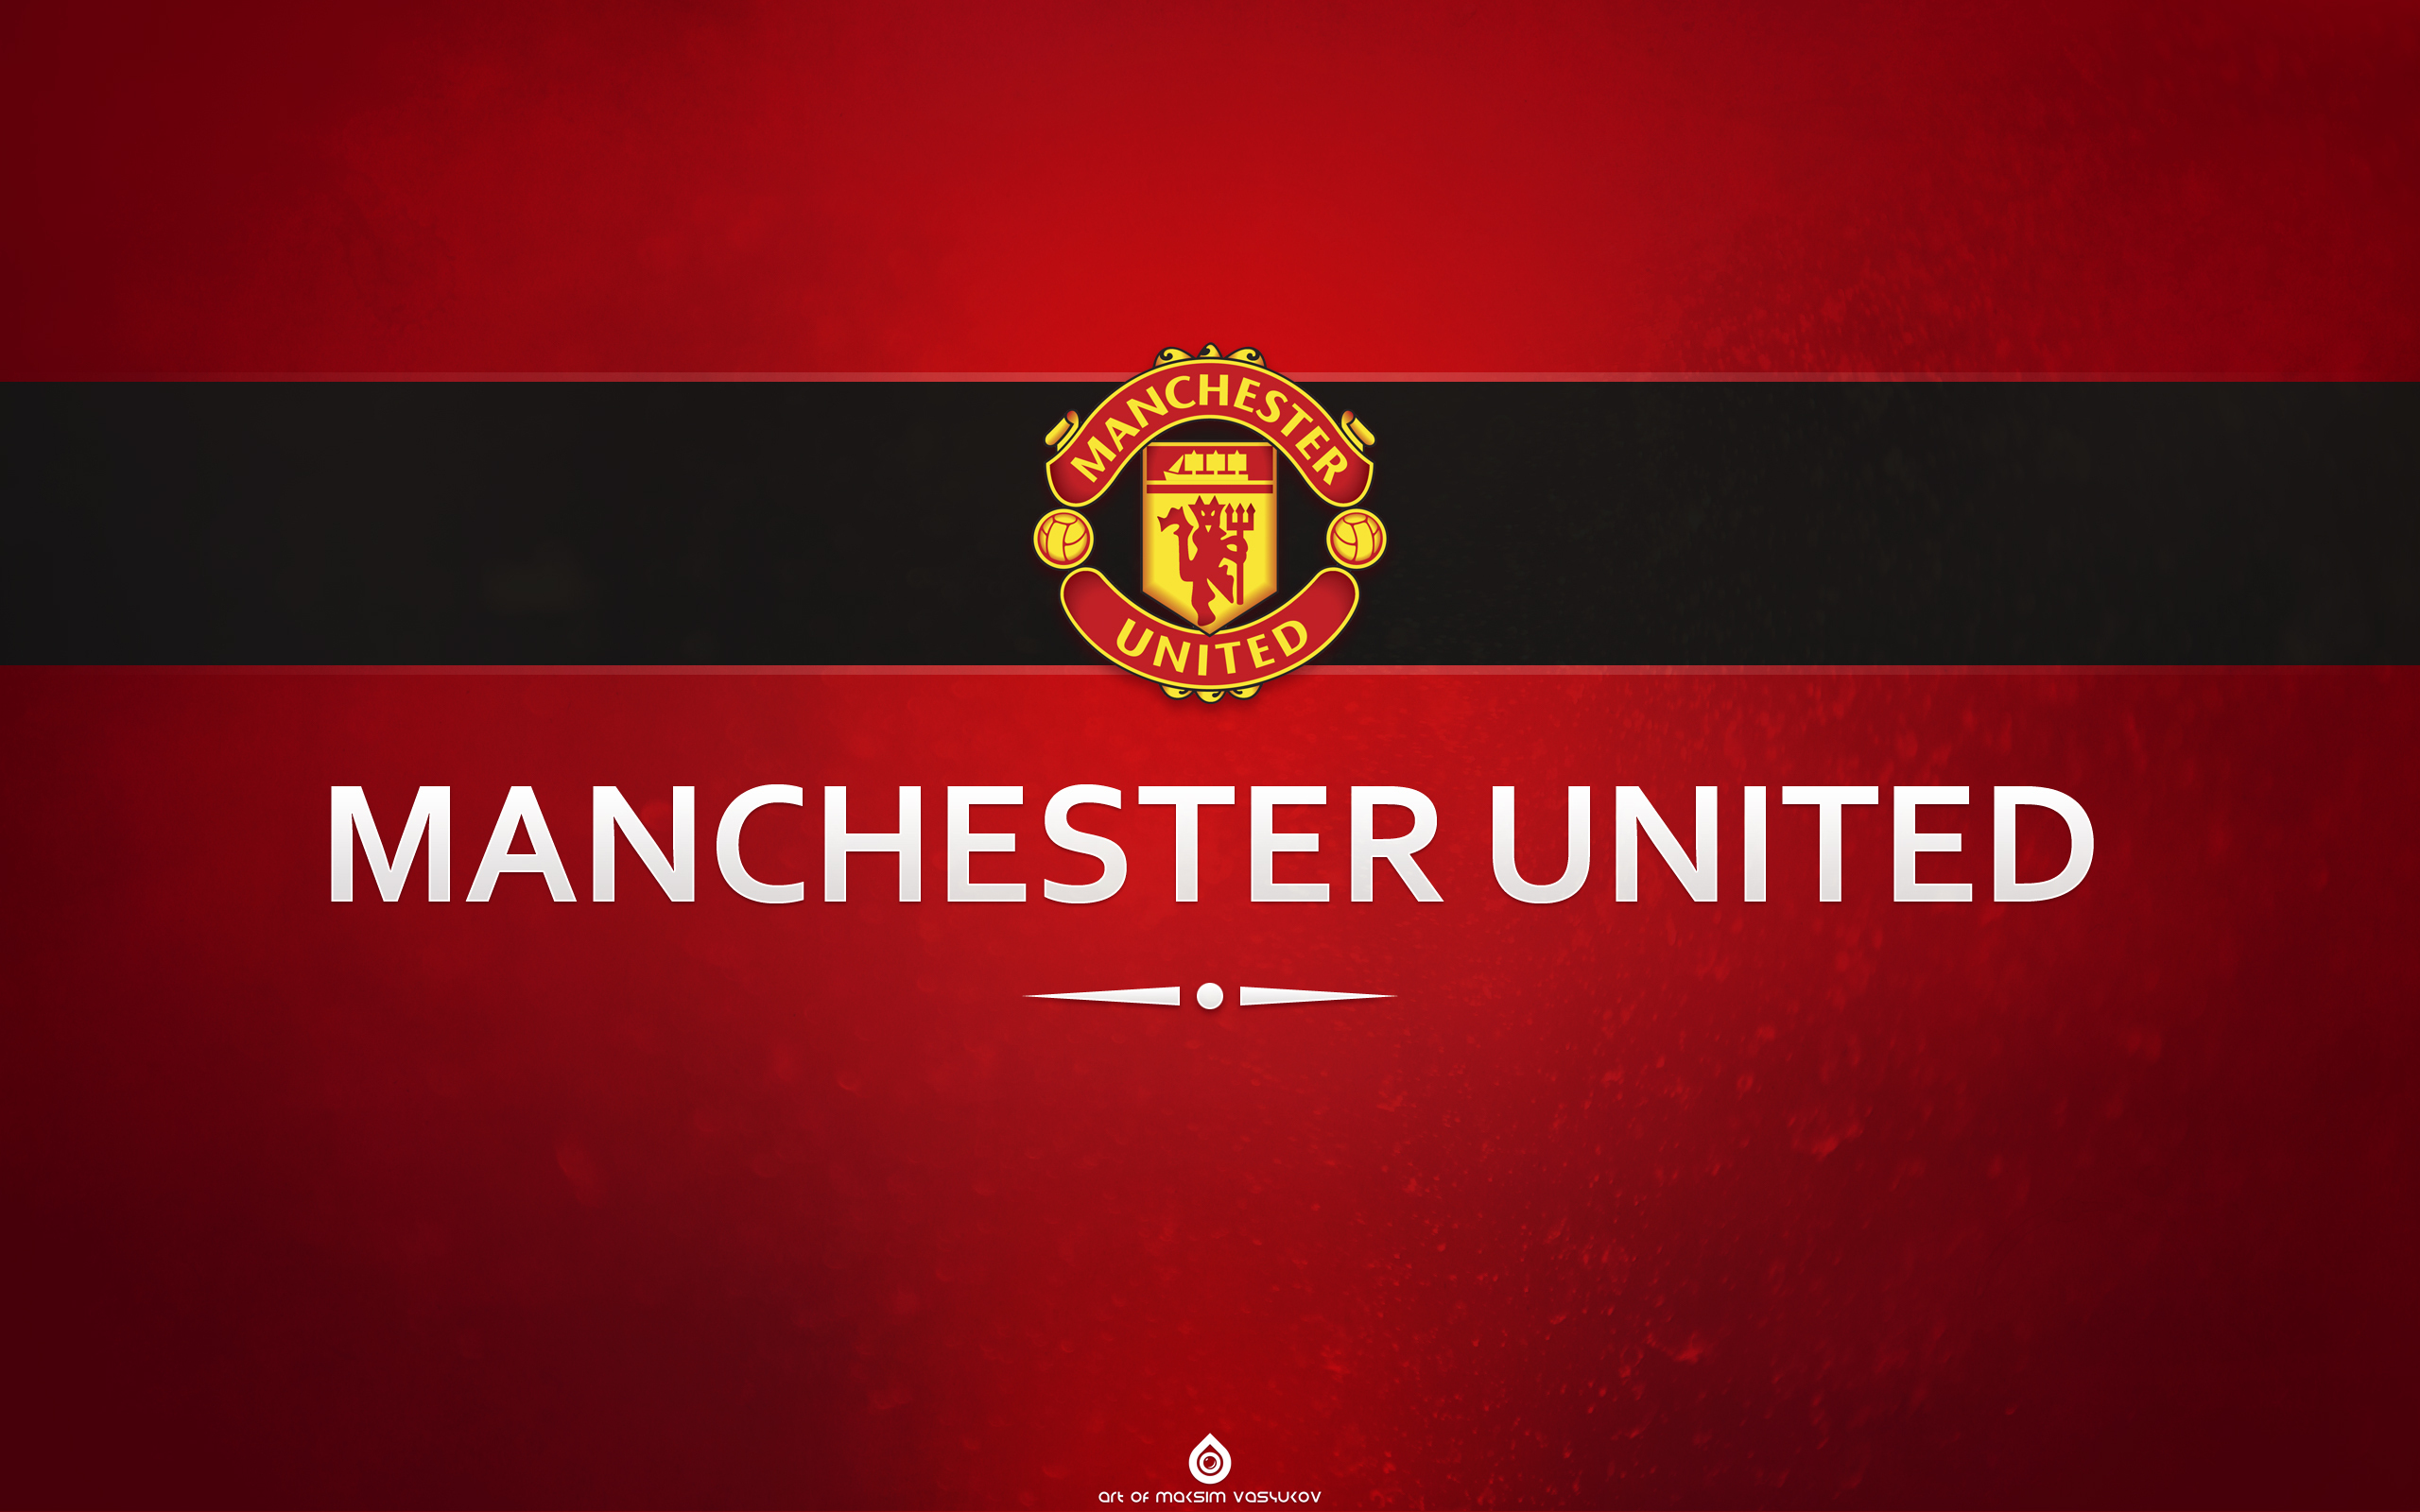 Manchester United Manchester United Football Club